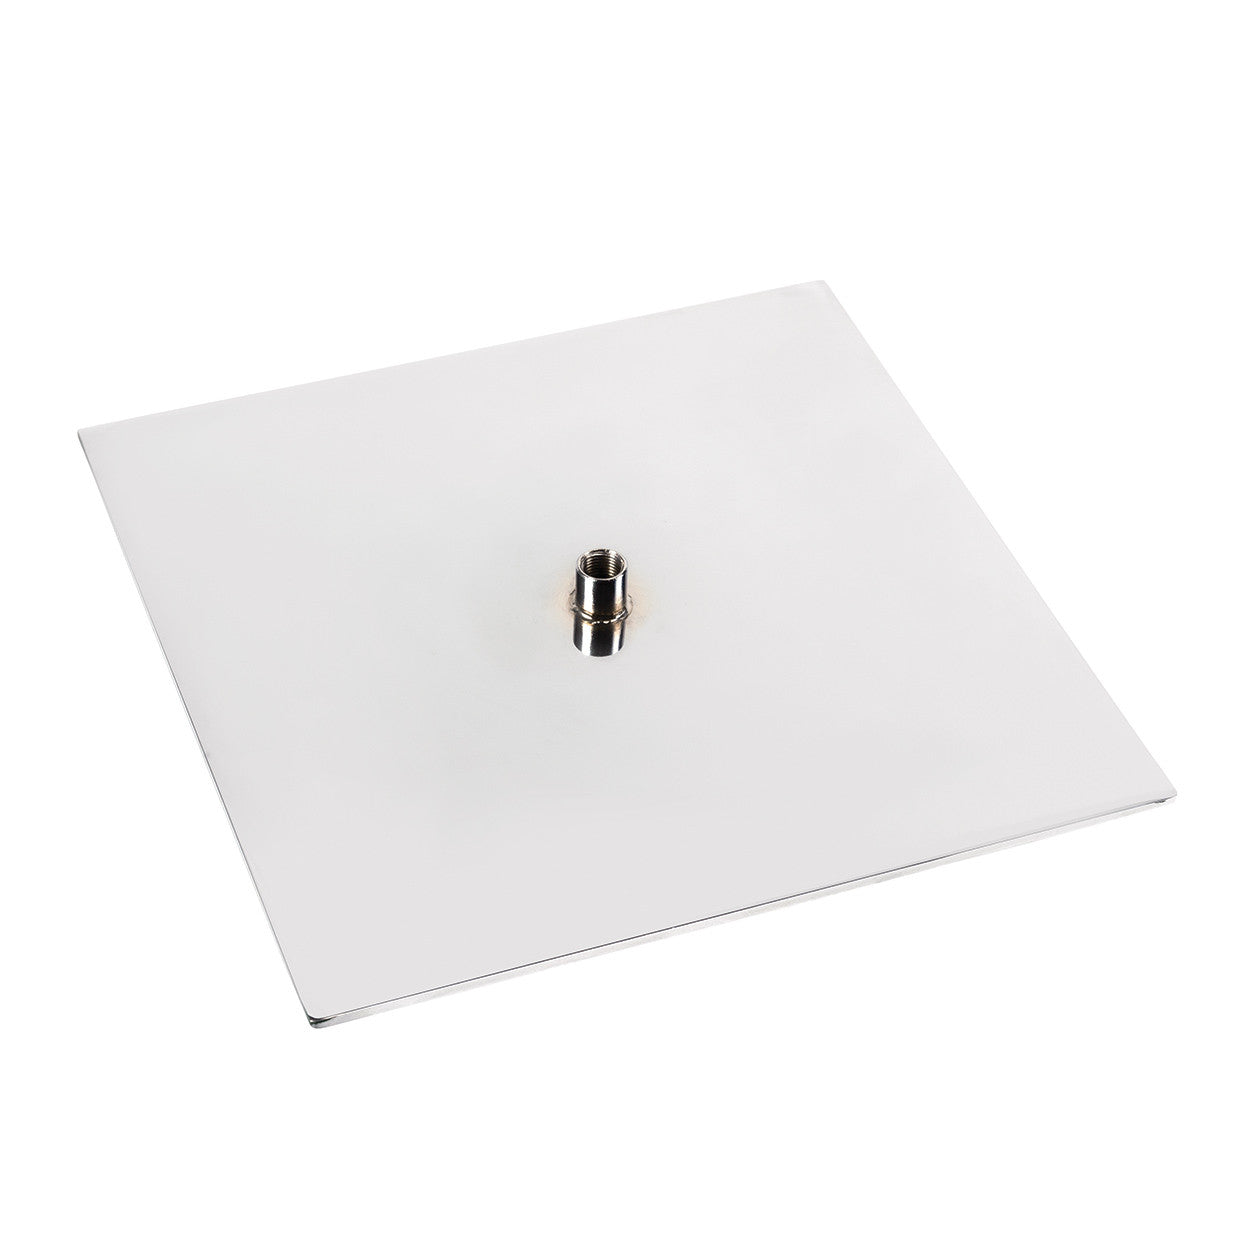 Signage hardware flat base with central fixing  200 W x 200 D x 15 mm H